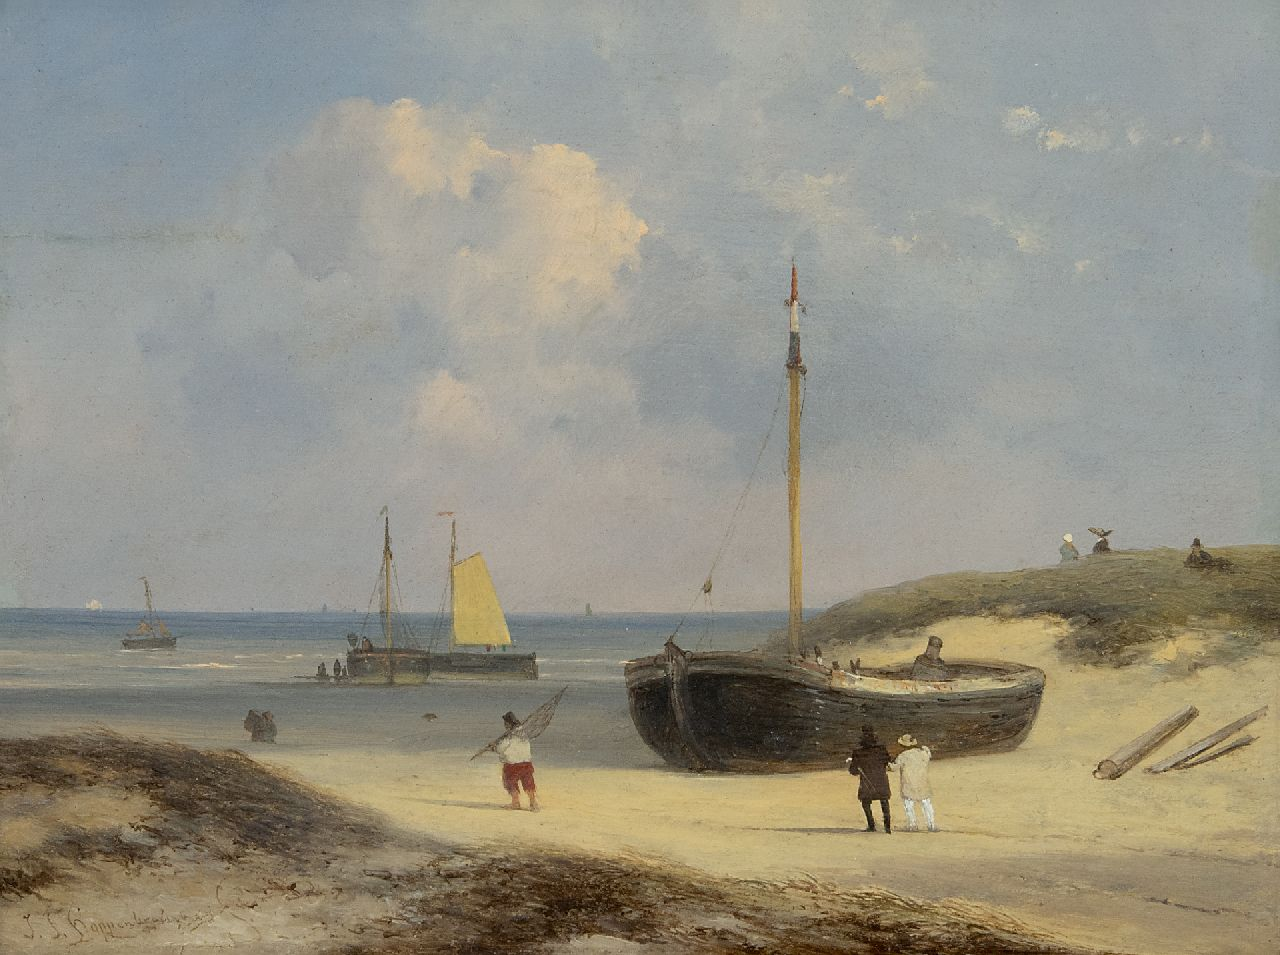 Hoppenbrouwers J.F.  | Johannes Franciscus Hoppenbrouwers | Paintings offered for sale | Elegant figures, fishermen and fishing boats on the beach at Scheveningen, oil on panel 22.4 x 29.0 cm, signed l.l.